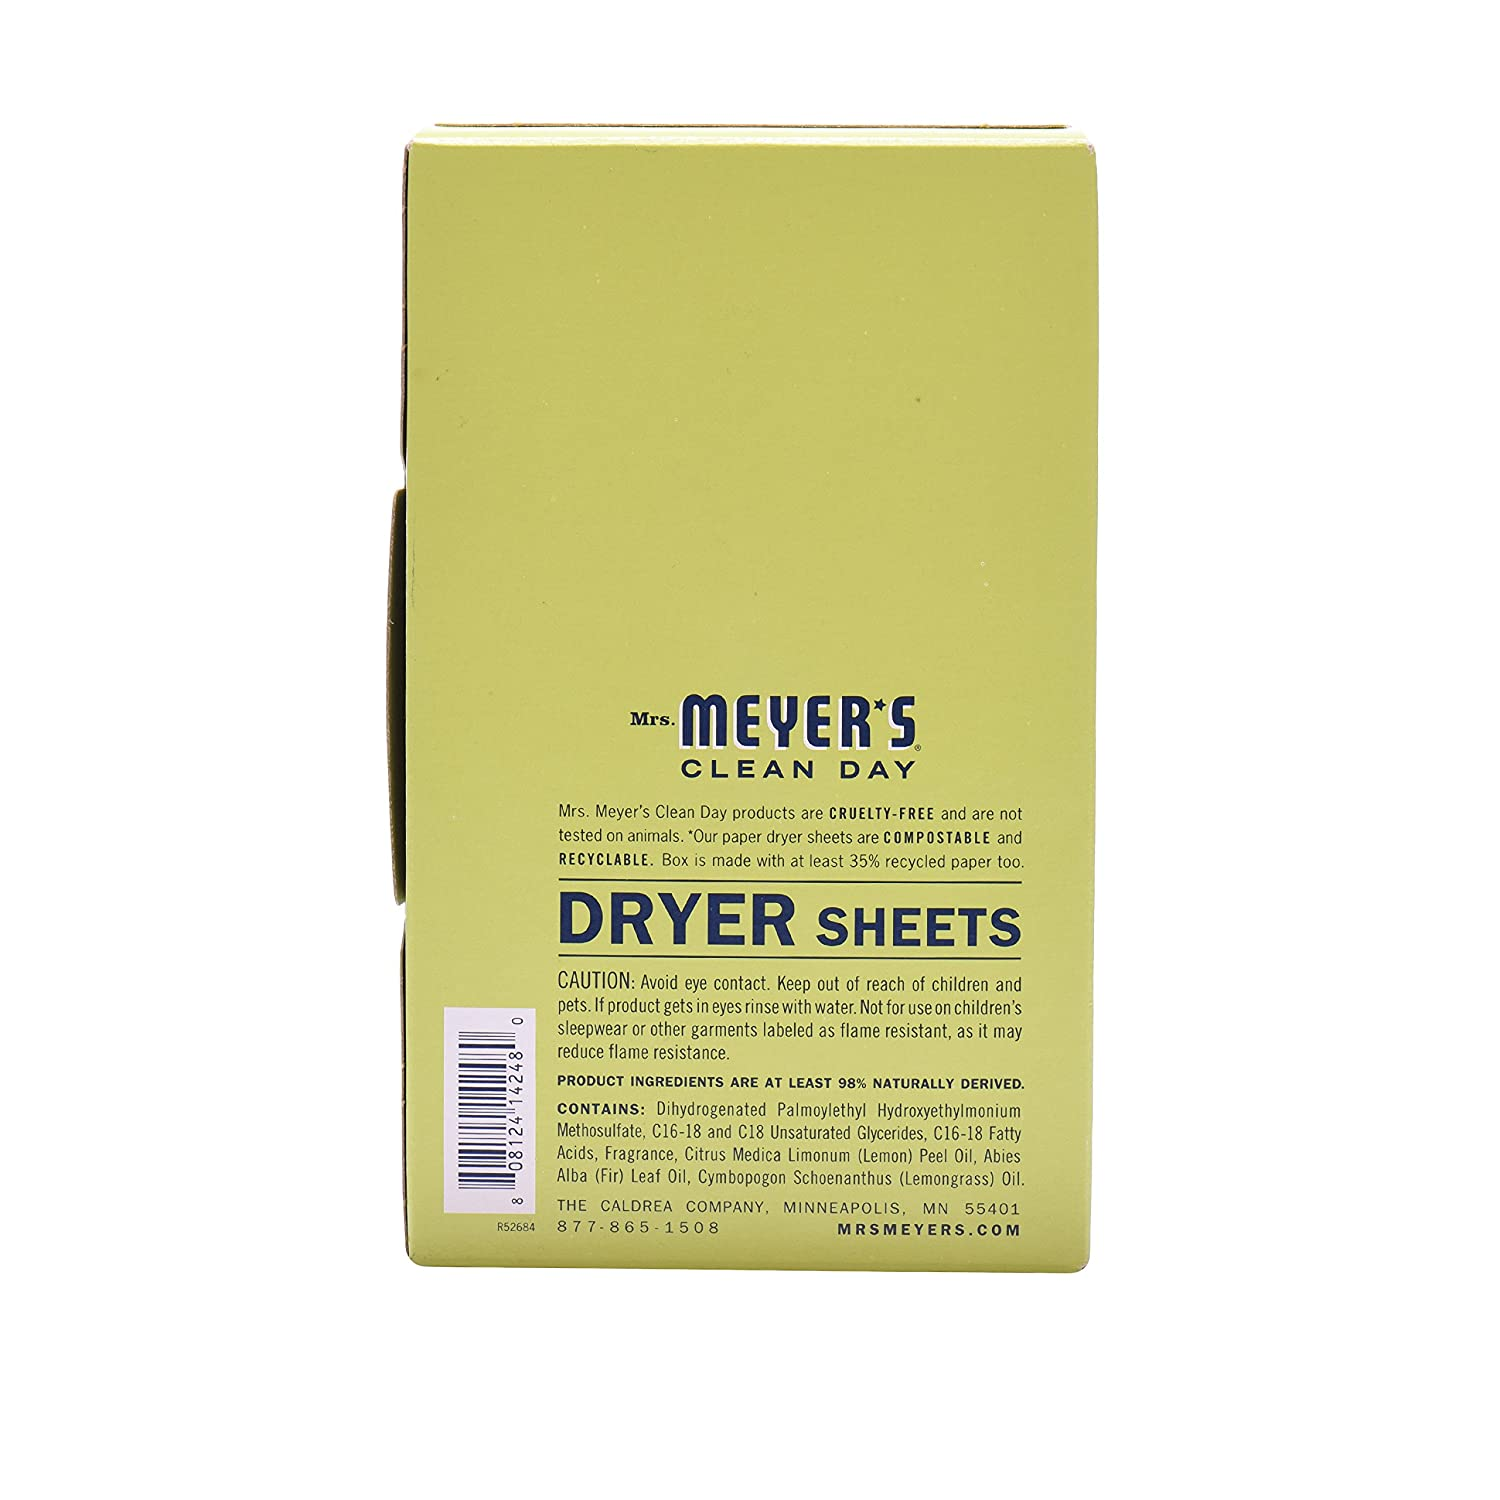 Mrs  Meyer's Clean Day Dryer Sheets, Lemon Verbena Scent, 80 count